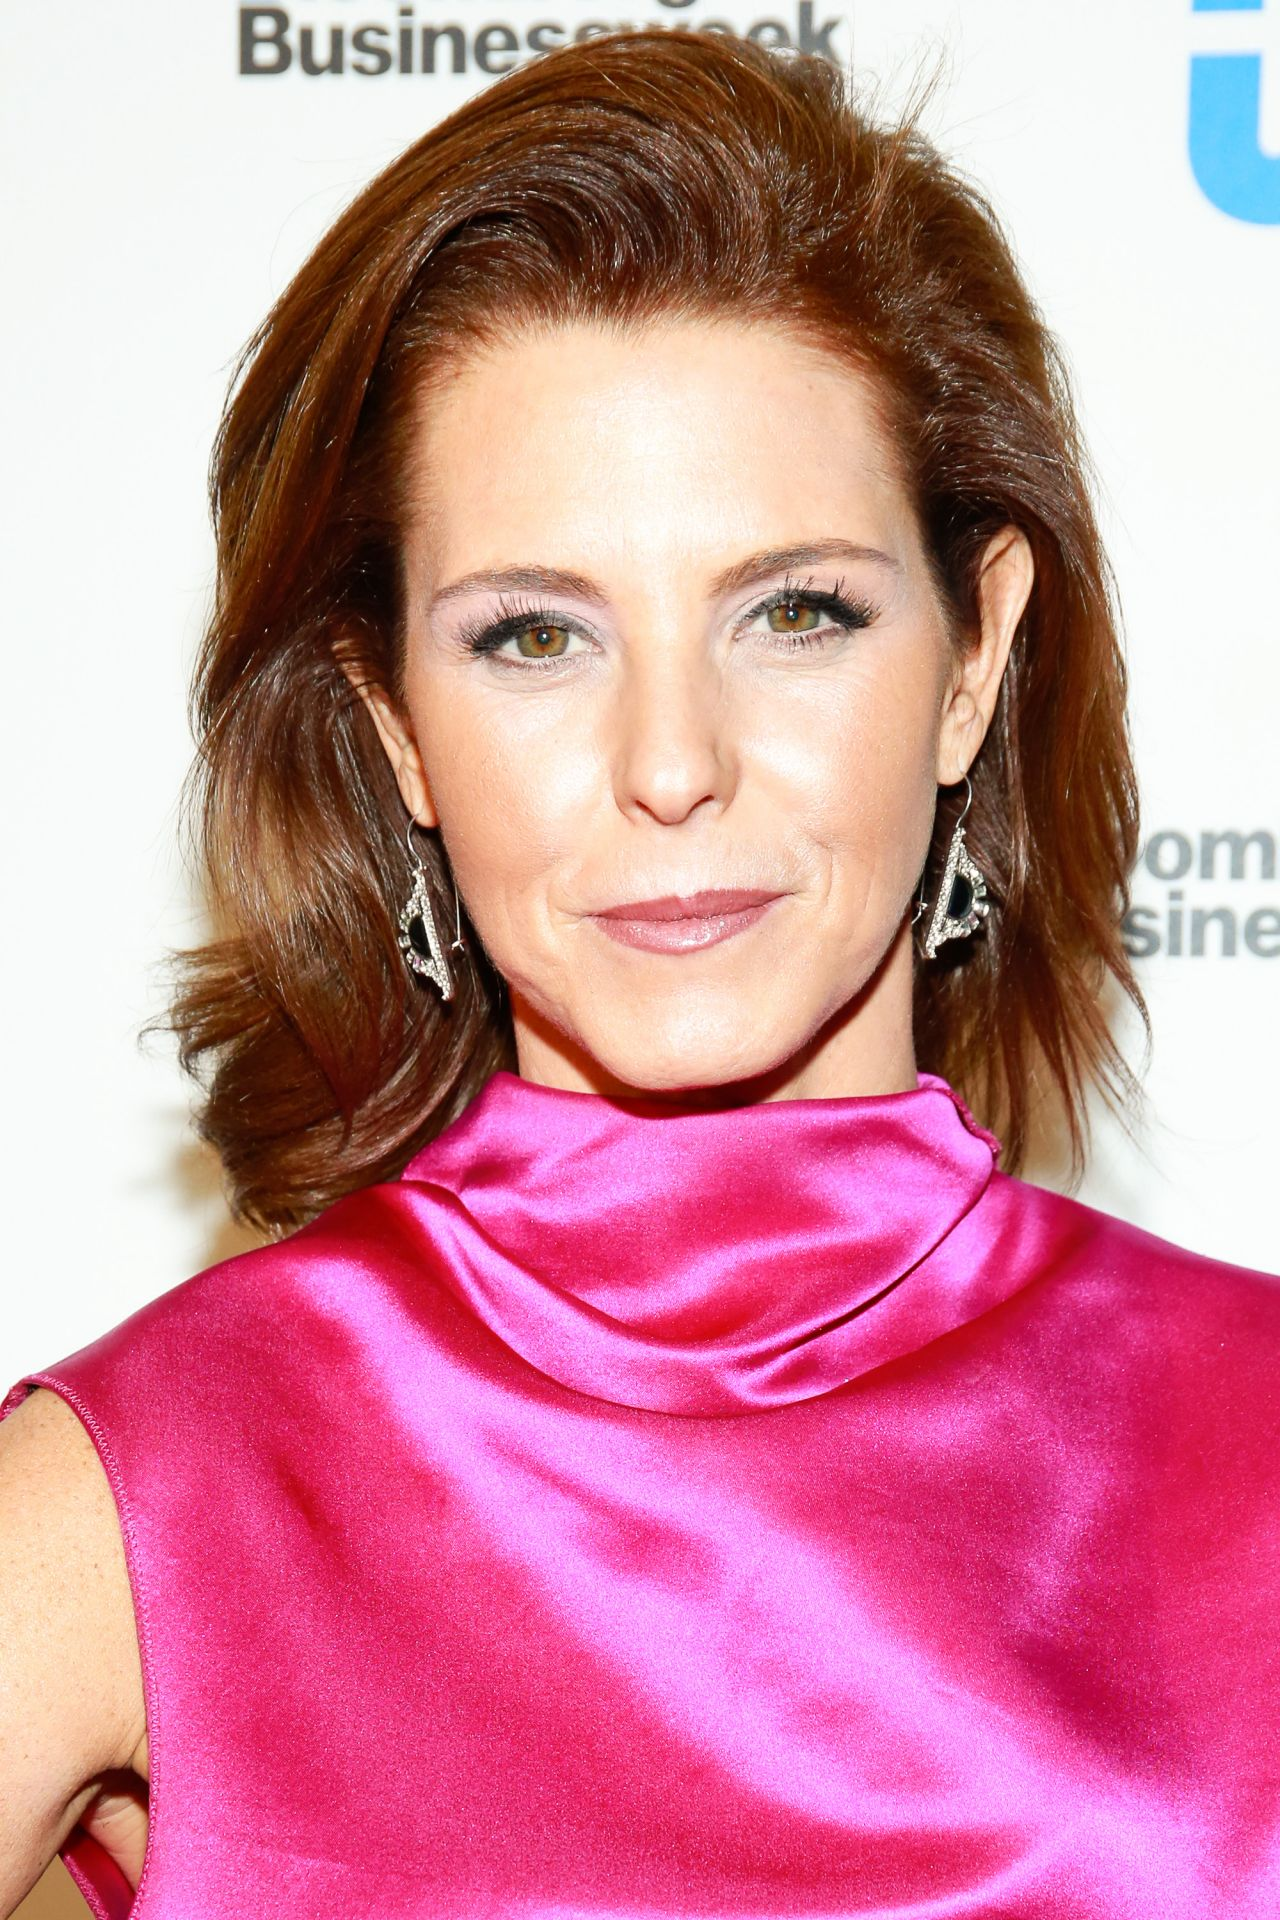 Stephanie Ruhle Latest Photos Celebmafia